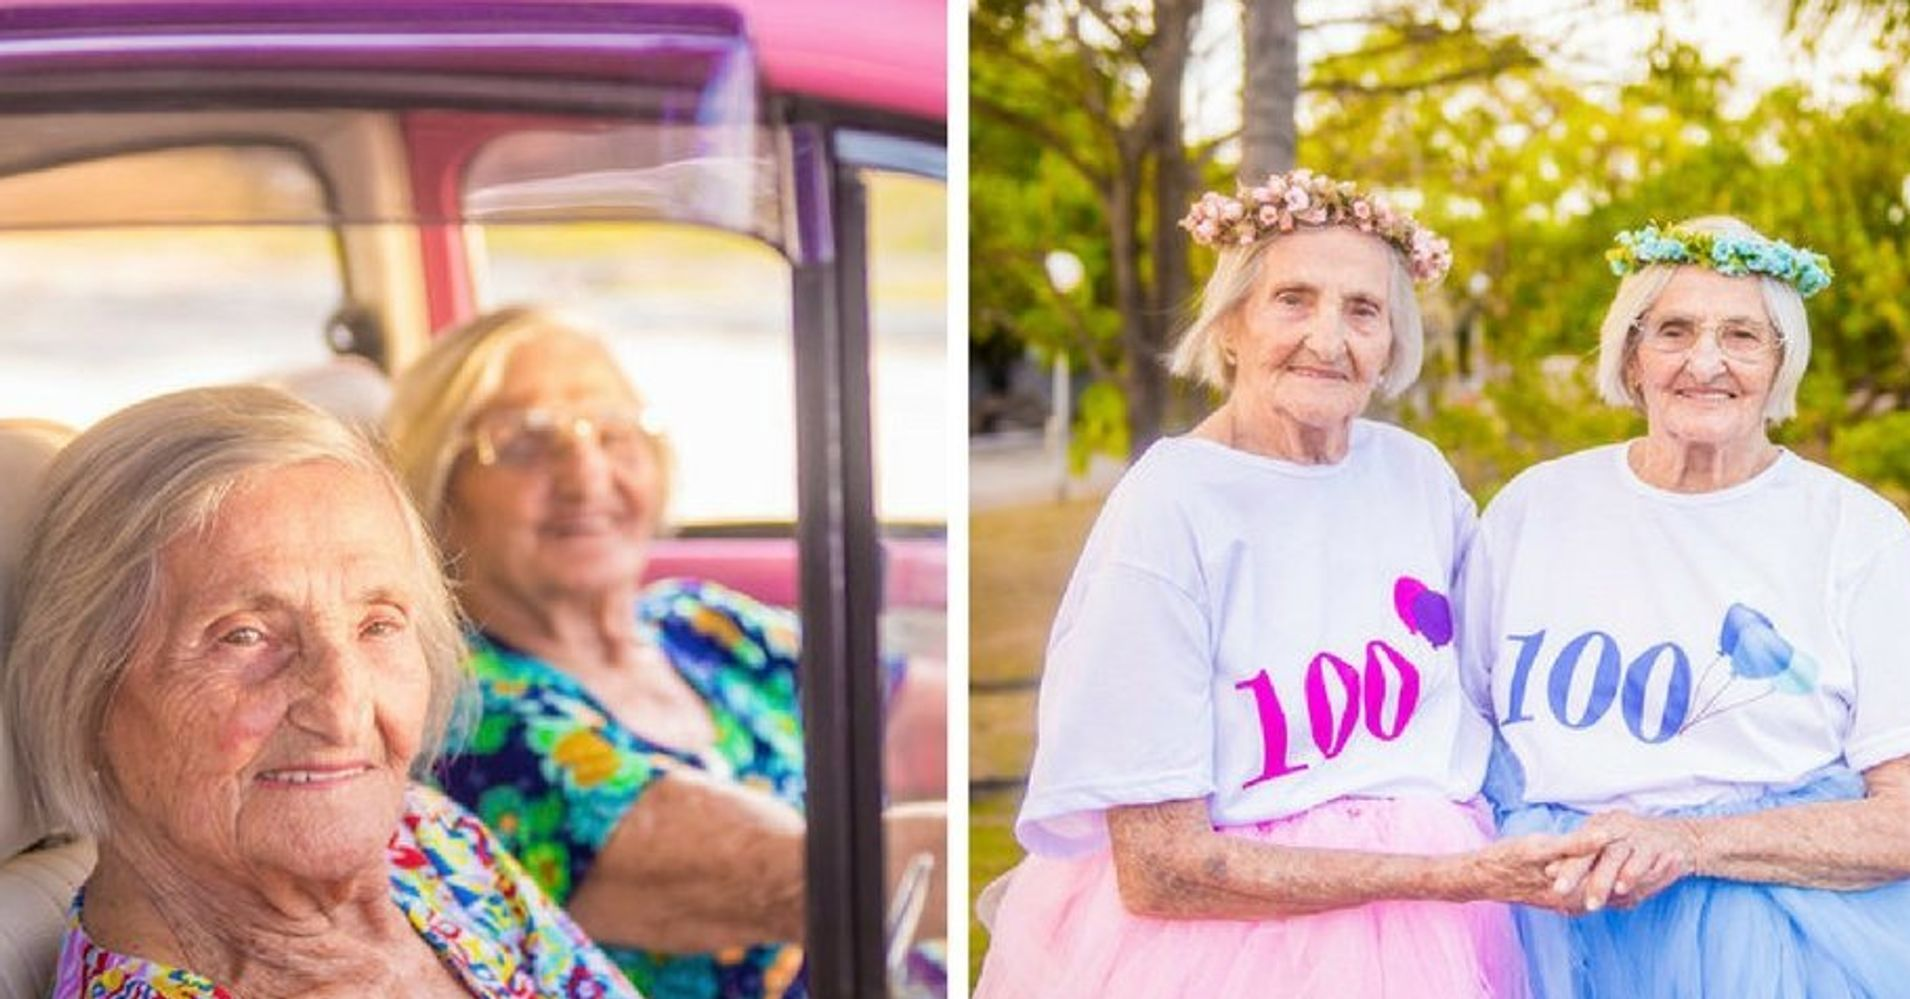 100-Year-Old Twins Mark Birthday With A Sassy, Tutu-Filled Photo Shoot